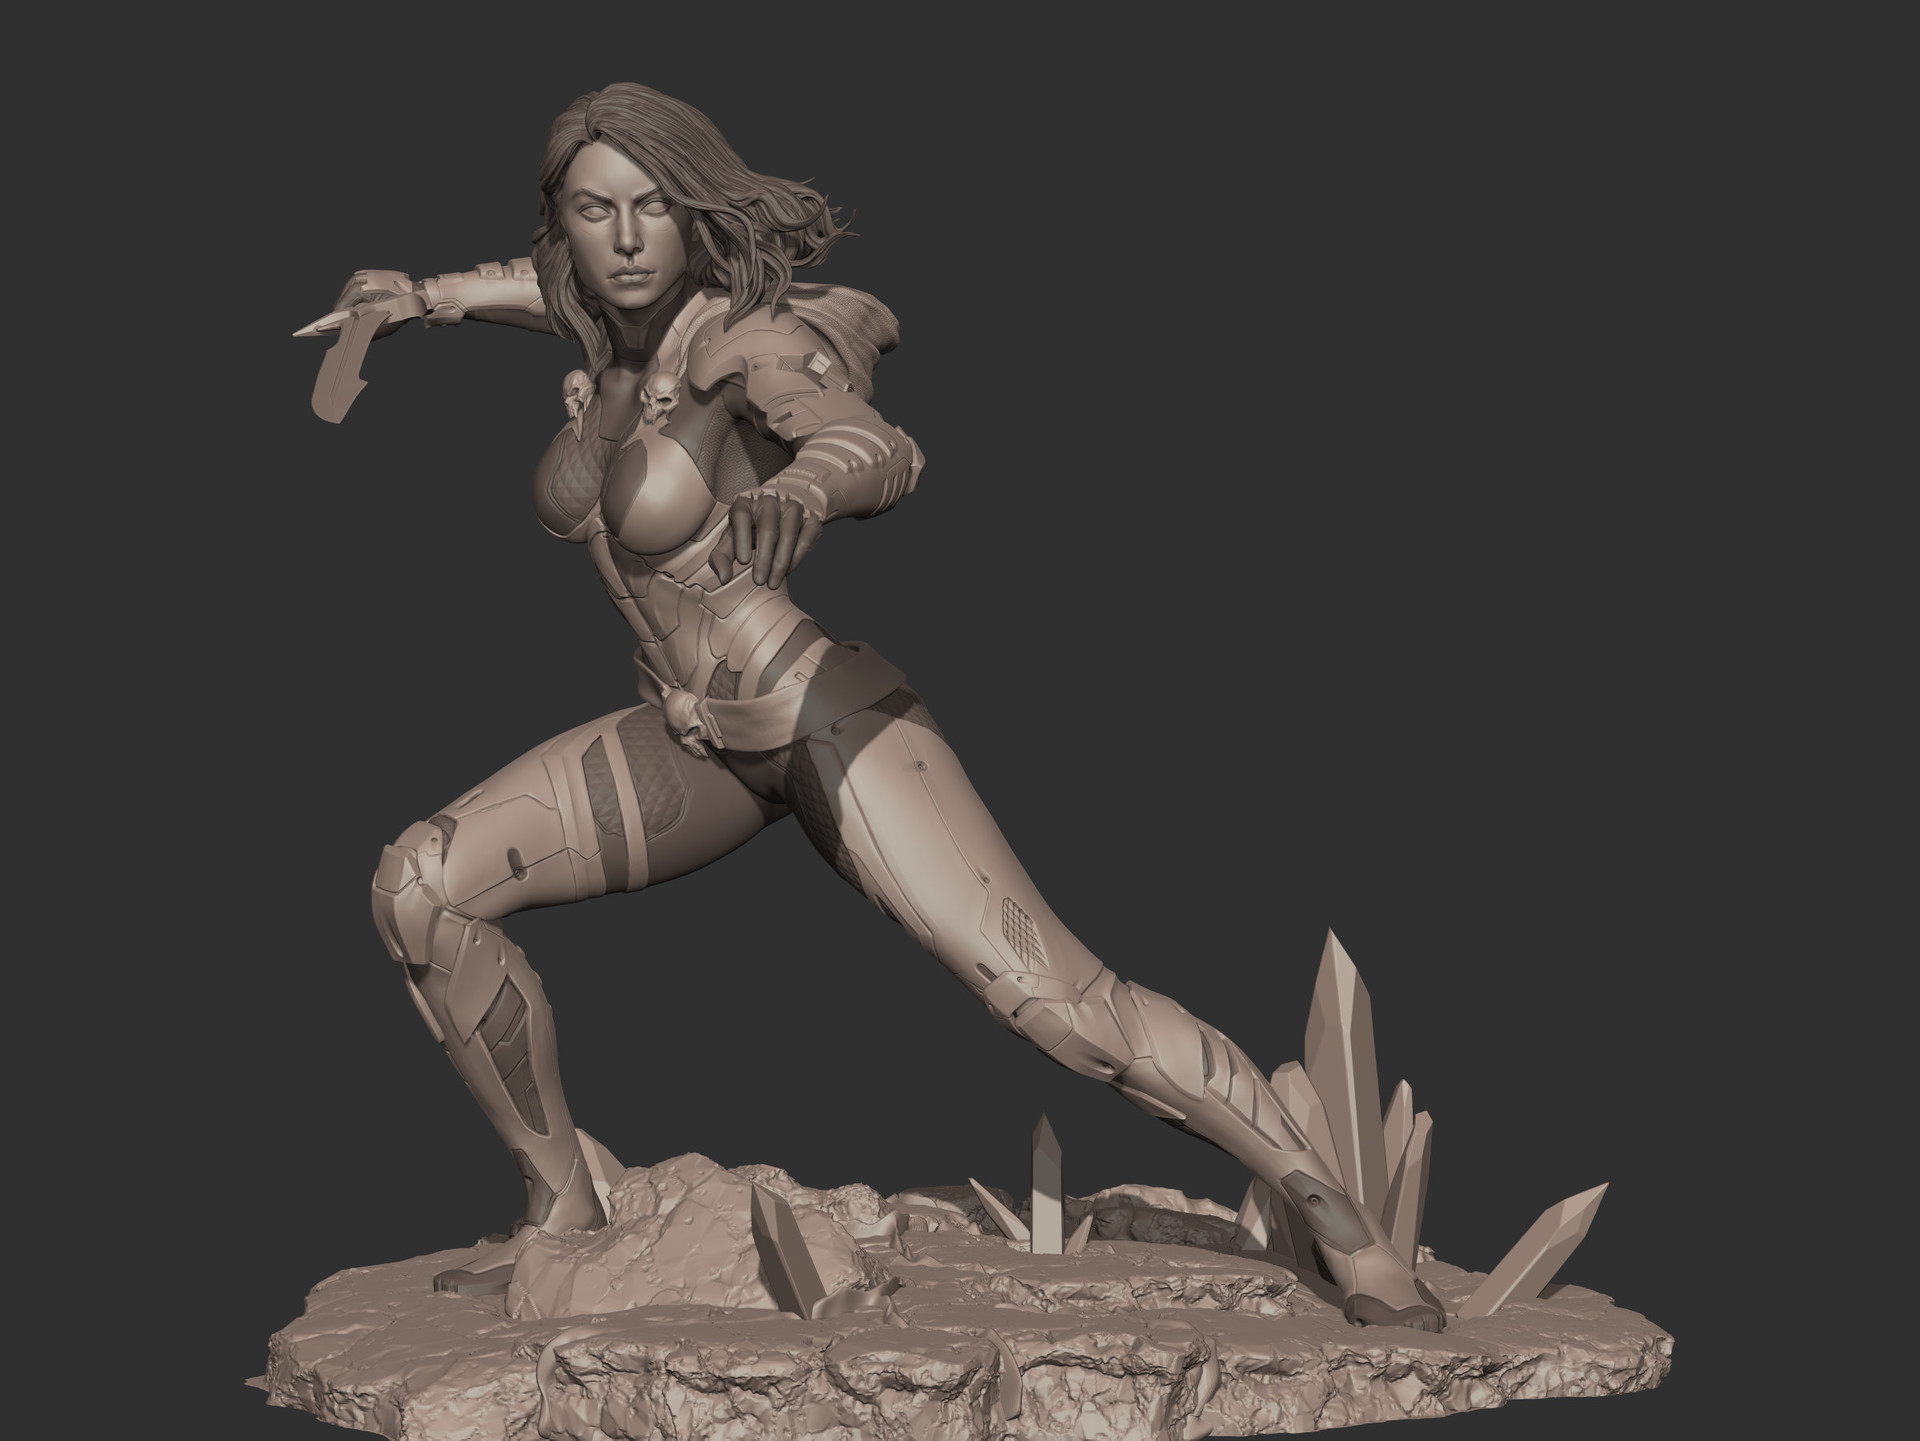 David giraud zbrush document5 3